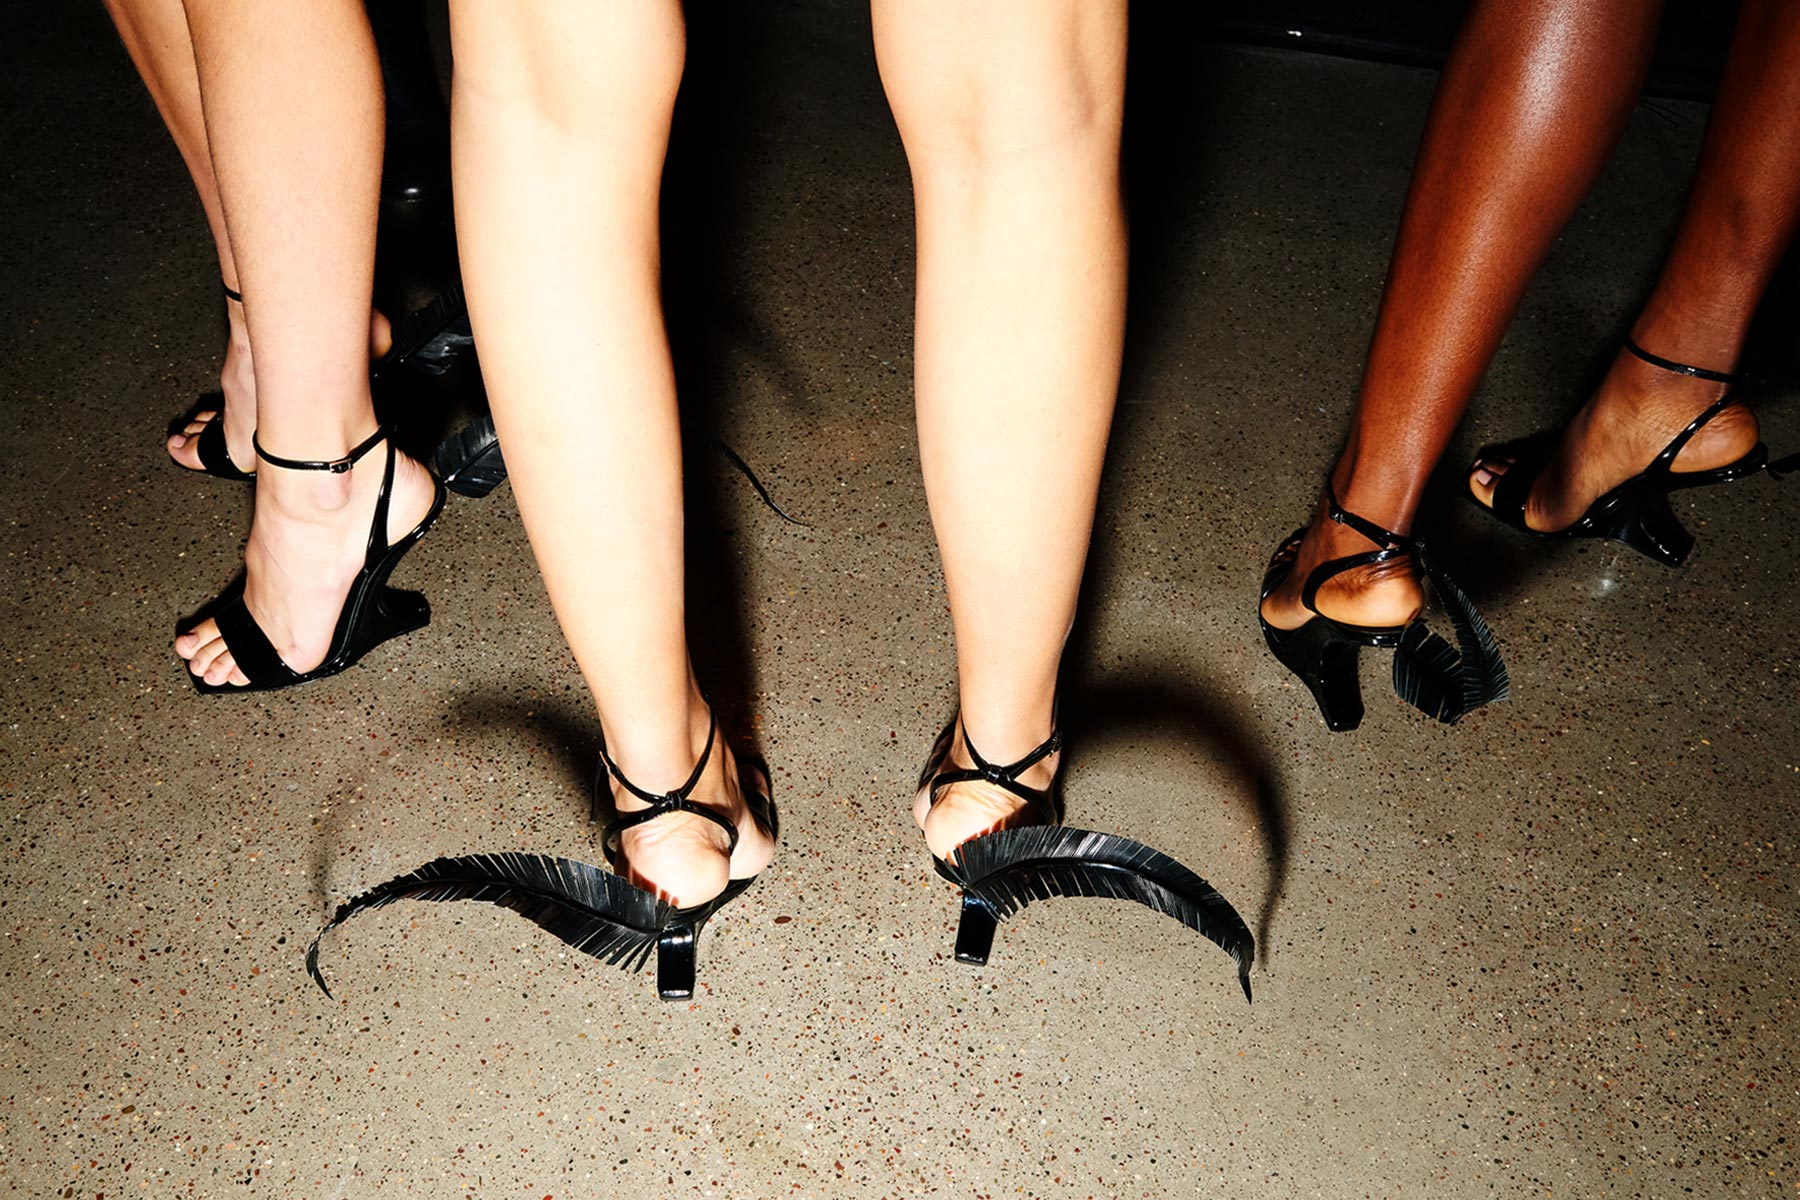 Boomerang/feather Giuseppe Zanotti heels backstage at Christian Cowan for Spring/Summer 2019. Photography by Alexander Thompson for Ponyboy magazine.